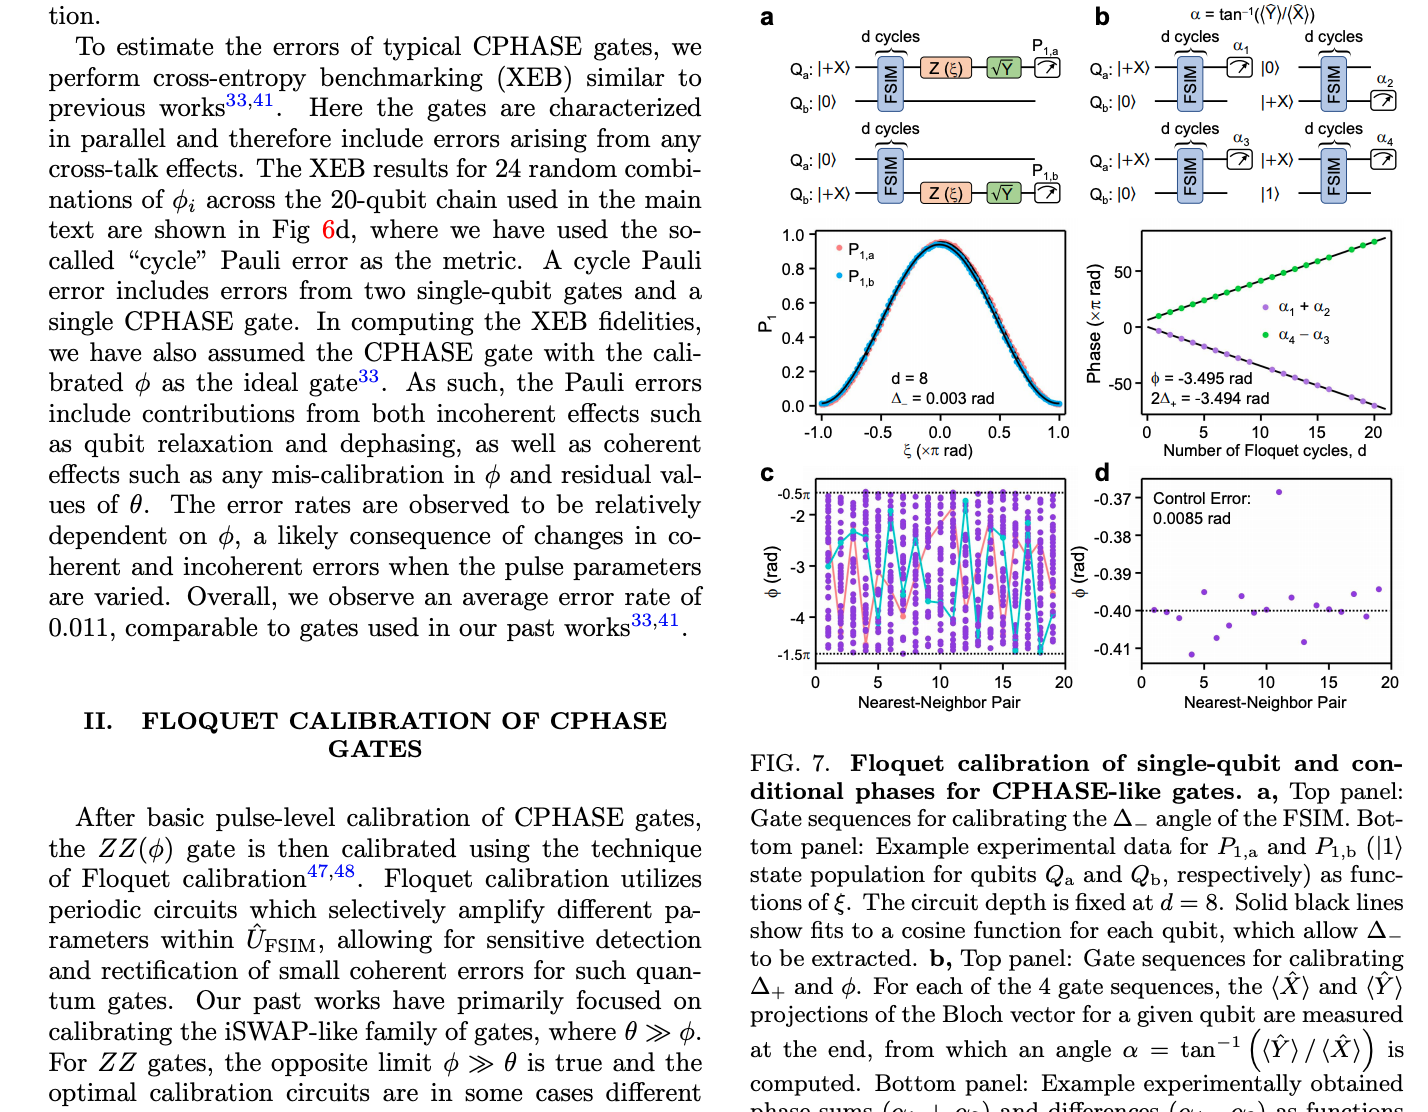 A screenshot of the paper, featuring utterly incomprehensible graphs, charts, and tiny text littered with greek symbols.